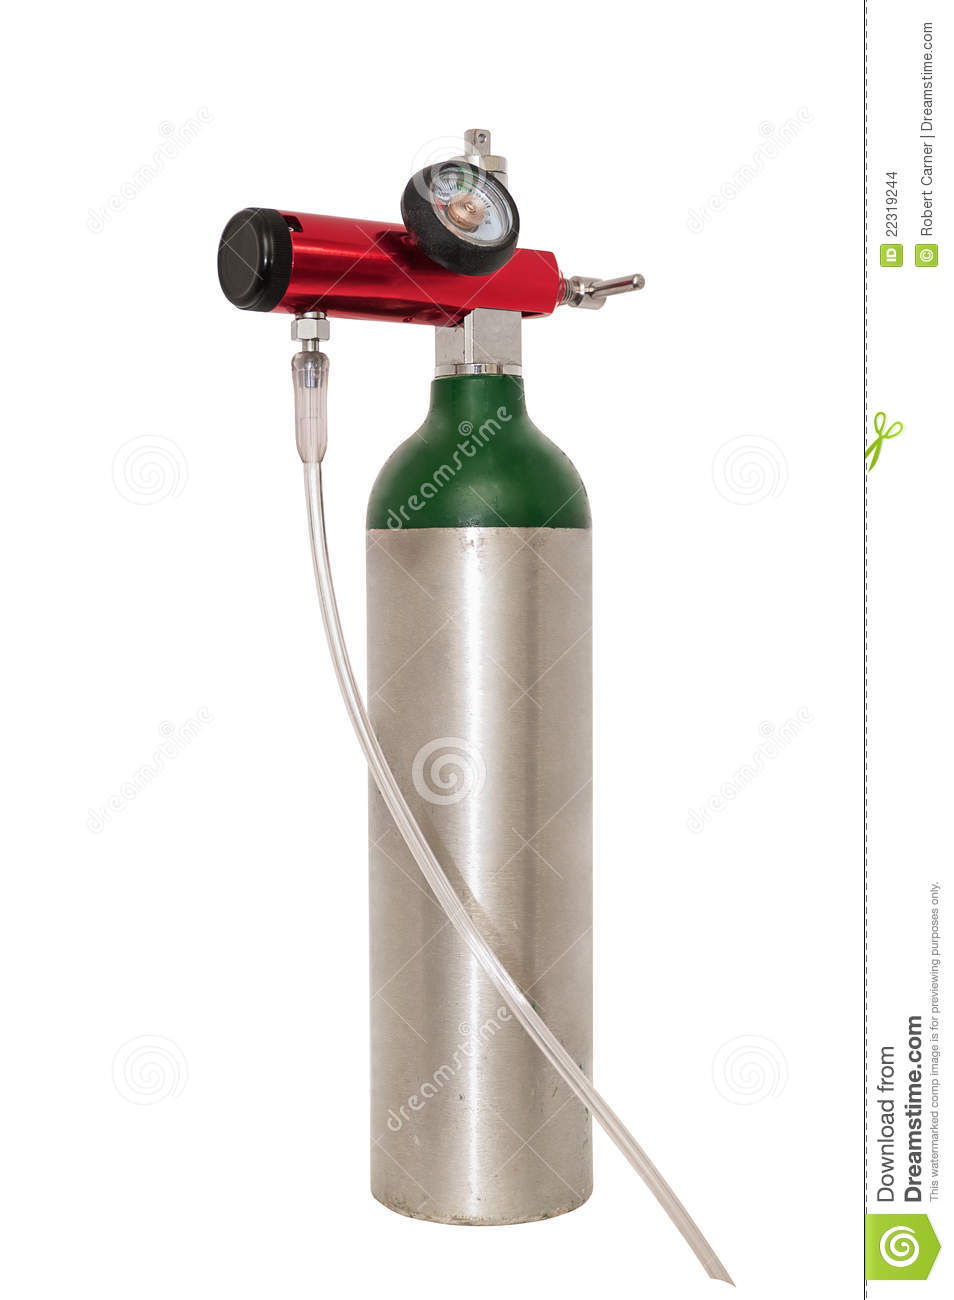 Stock Afbeeldingen De Draagbare Cilinder Van De Zuurstof Voor Medisch Gebruik Image22319244 moreover pressed Gas Cylinder Size Chart together with Watch in addition Building Teams By Defining Roles And Responsibility In Meetings in addition CG9ydGFibGUgb3h5Z2VuIHRhbmsgY2Fycmllcg. on portable oxygen tanks